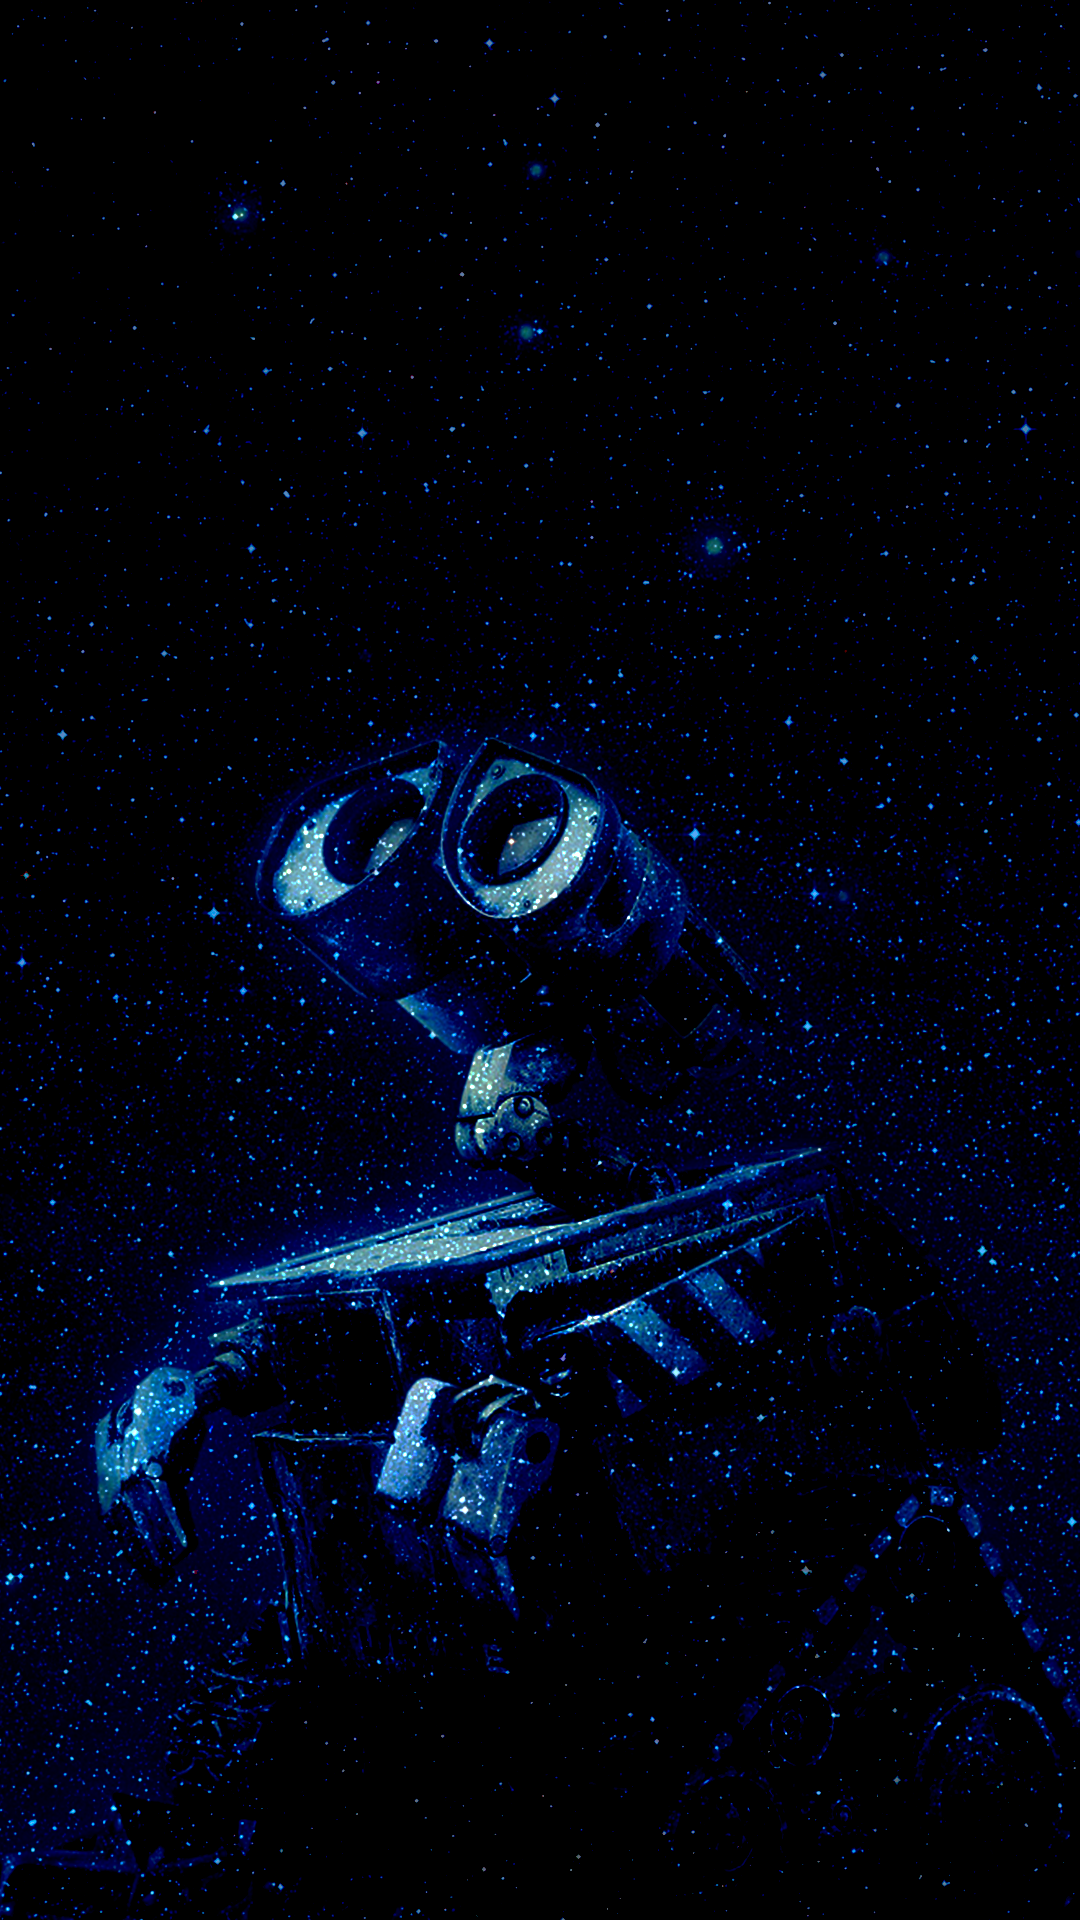 Wall E Space 1080 x 1920 FHD Wallpaper Wall E Space 1080 x 1920 FHD Wallpaper